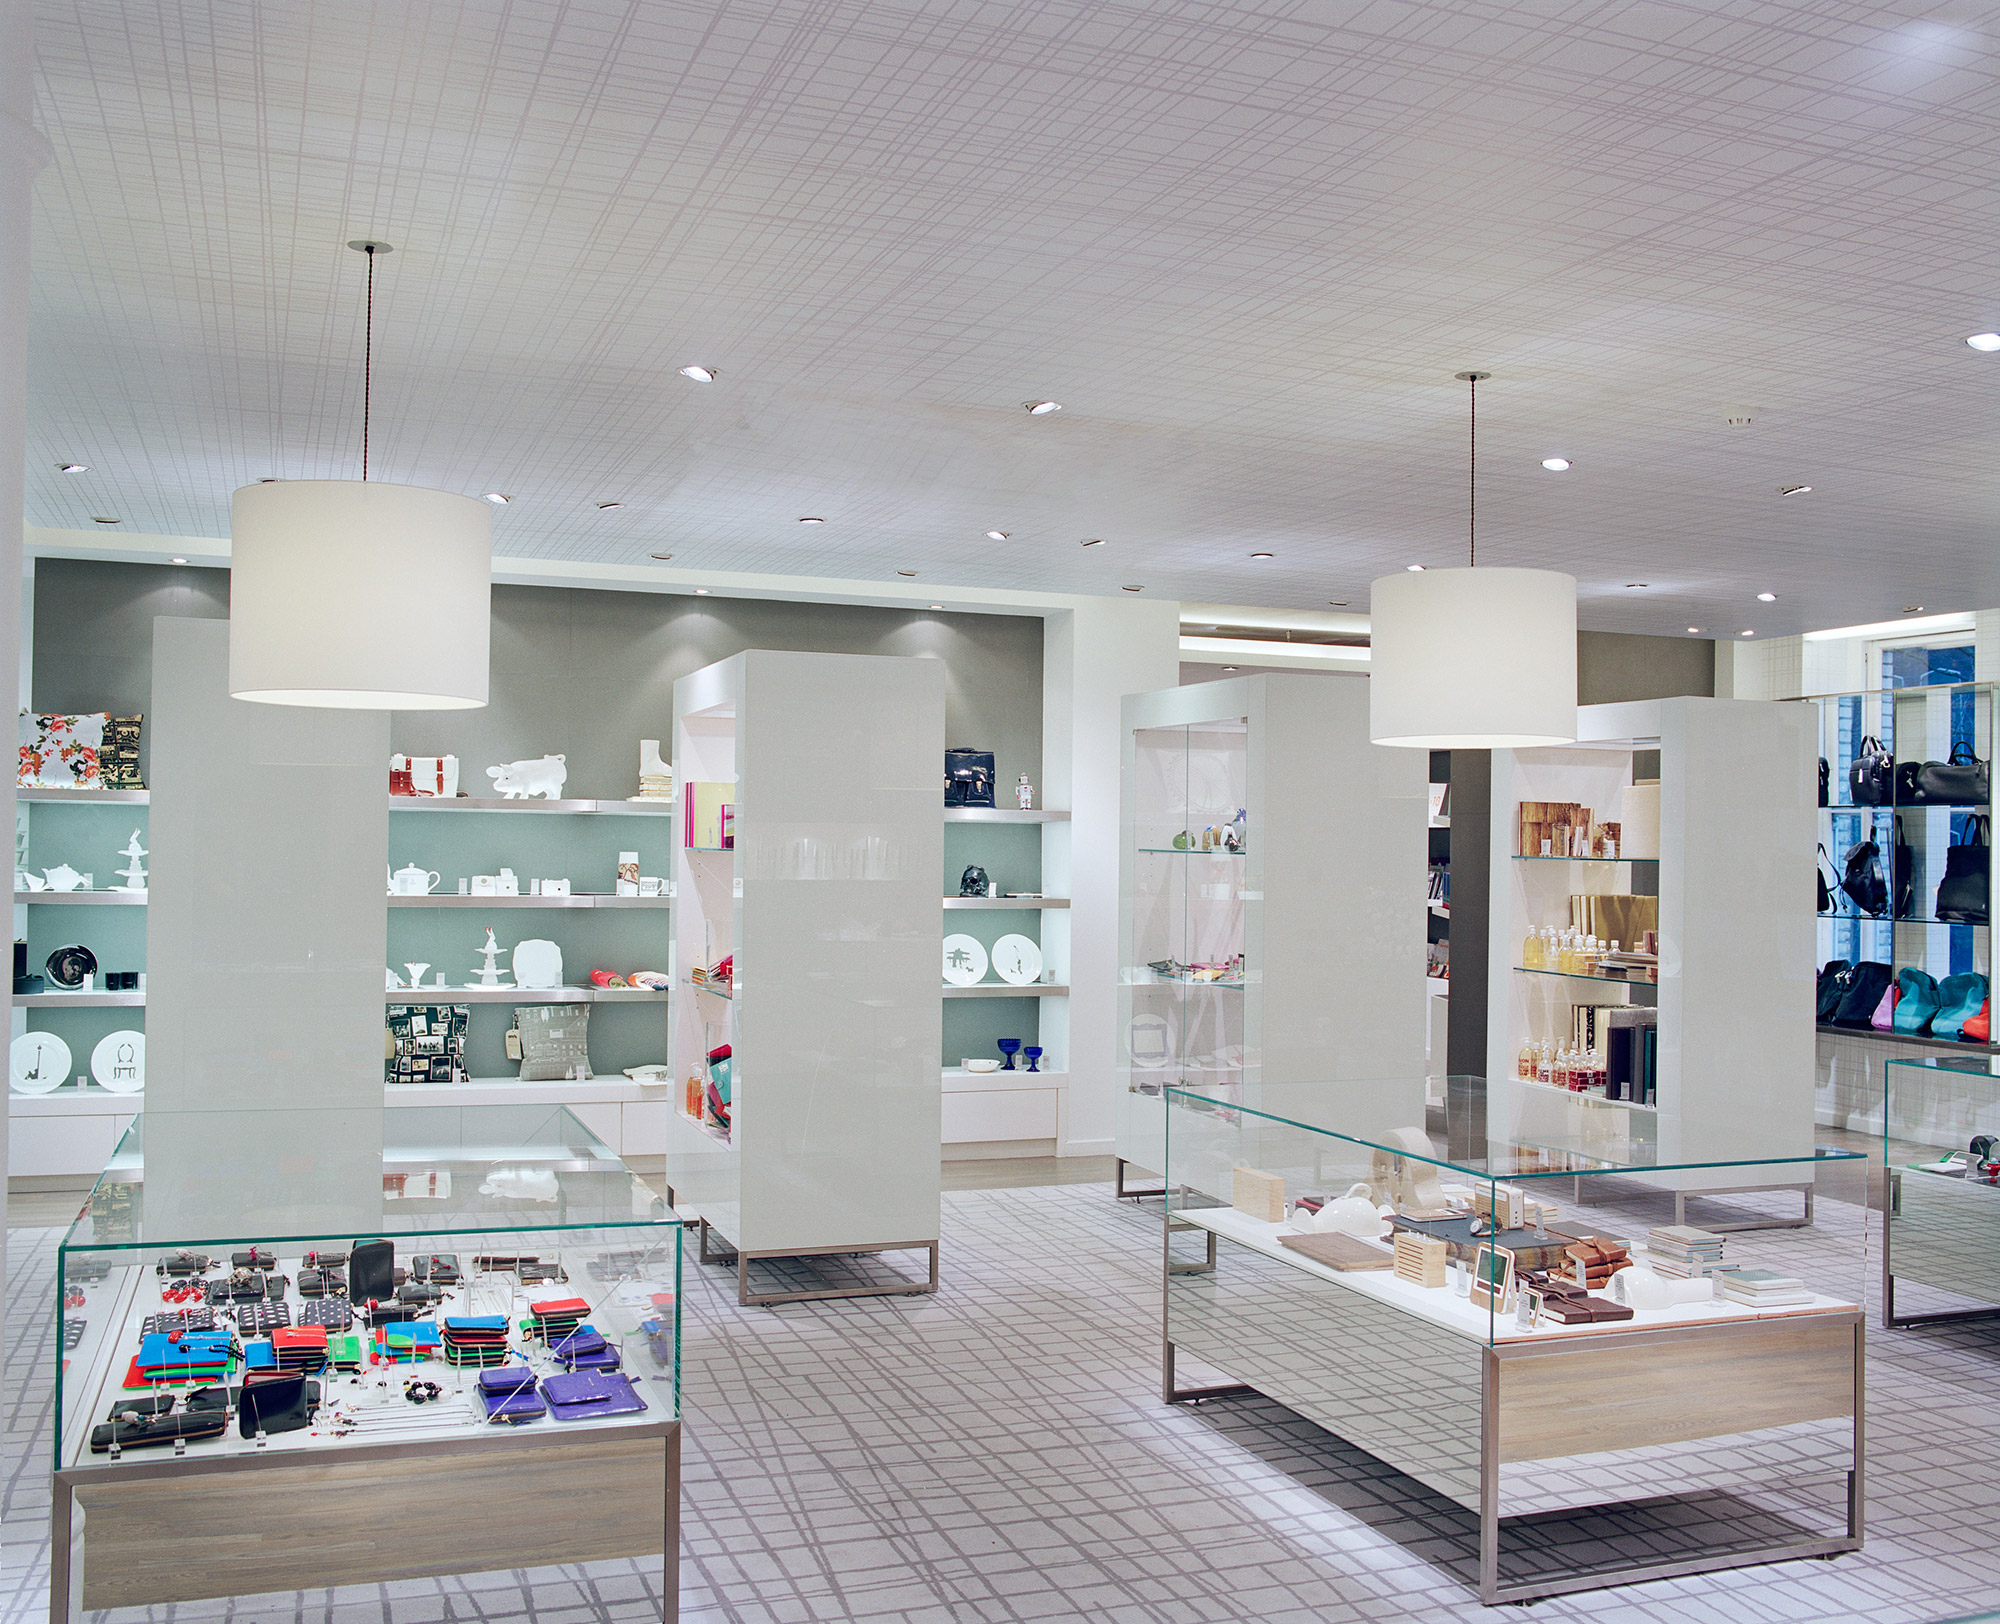 Paperchase Tottenham Court Road, retail interior, glass floor units with white shelving